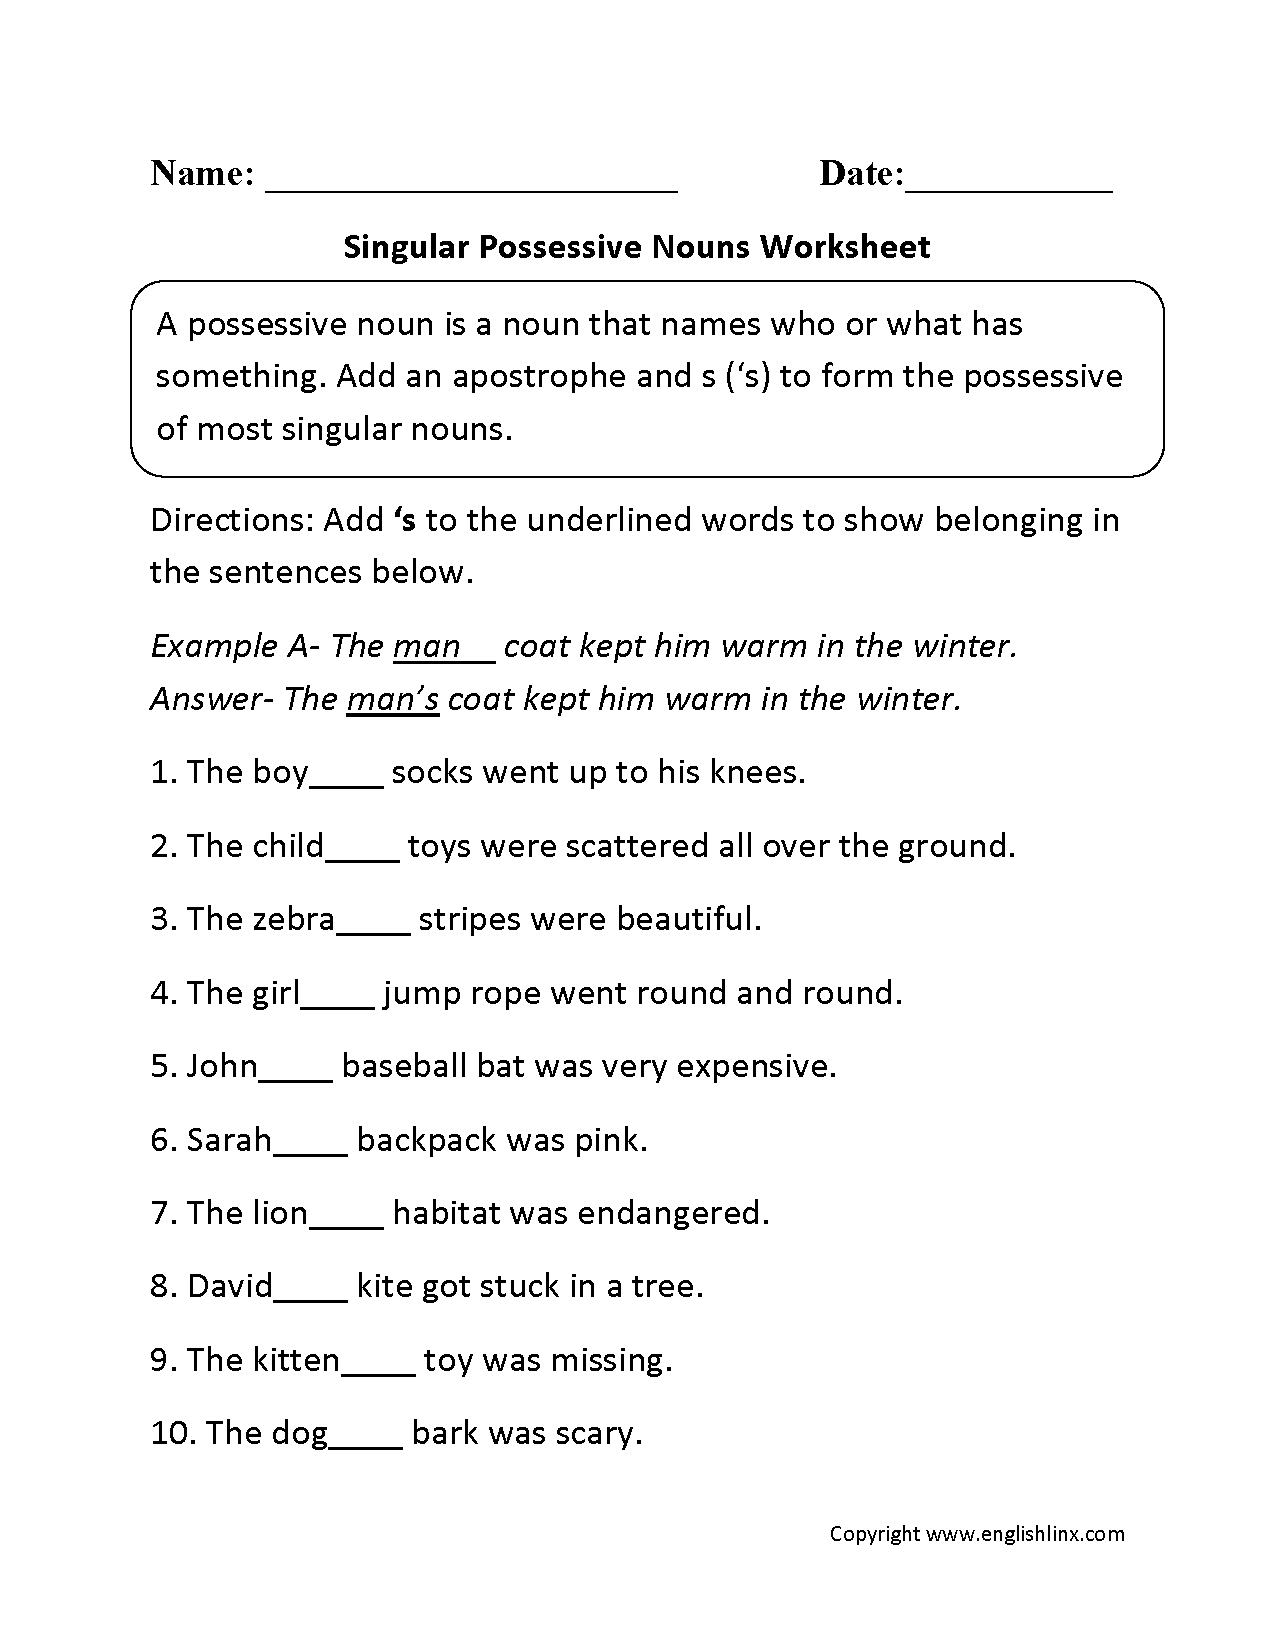 Aldiablosus  Scenic Nouns Worksheets  Possessive Nouns Worksheets With Marvelous Possessive Nouns Worksheets With Beauteous Wedding Worksheets Also Simple Interest Word Problems Worksheet In Addition Penny Worksheets And Shurley English Worksheets As Well As Volume Of Composite Figures Worksheet Additionally Frog Dissection Worksheet Answer Key From Englishlinxcom With Aldiablosus  Marvelous Nouns Worksheets  Possessive Nouns Worksheets With Beauteous Possessive Nouns Worksheets And Scenic Wedding Worksheets Also Simple Interest Word Problems Worksheet In Addition Penny Worksheets From Englishlinxcom